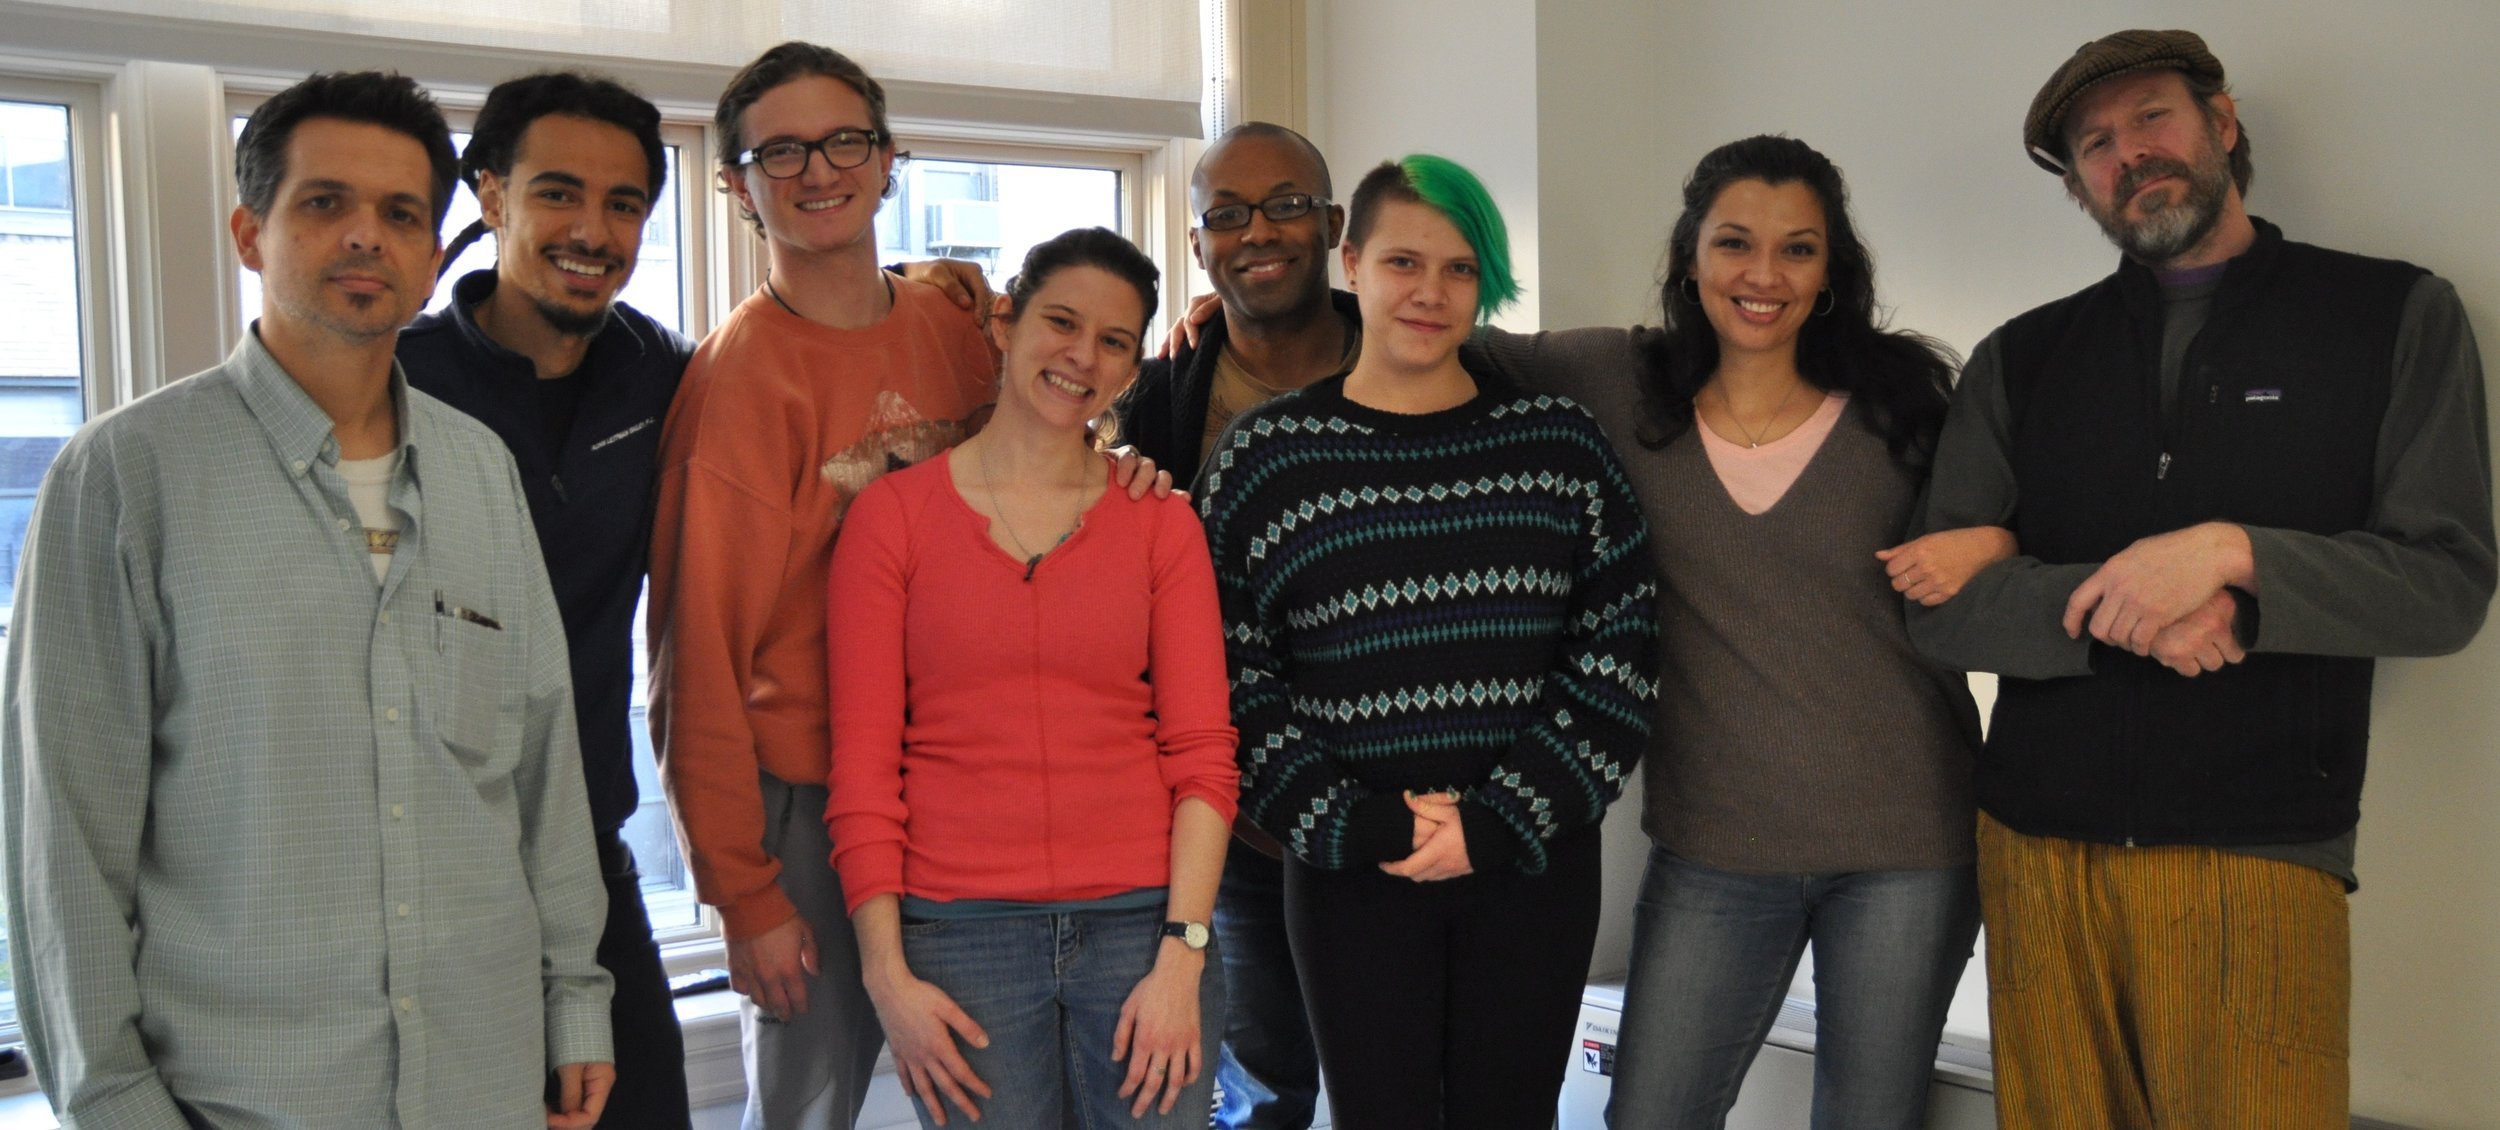 (L-R) Playwright Kirby Fields, Silvestre Rasuk, Max Lebow, Stage Manager Samantha Davis, Devin Haqq, Genevieve Windbiel, Cynthia Bastidas, Director Josh Liveright | Photo: Jacki Goldhammer